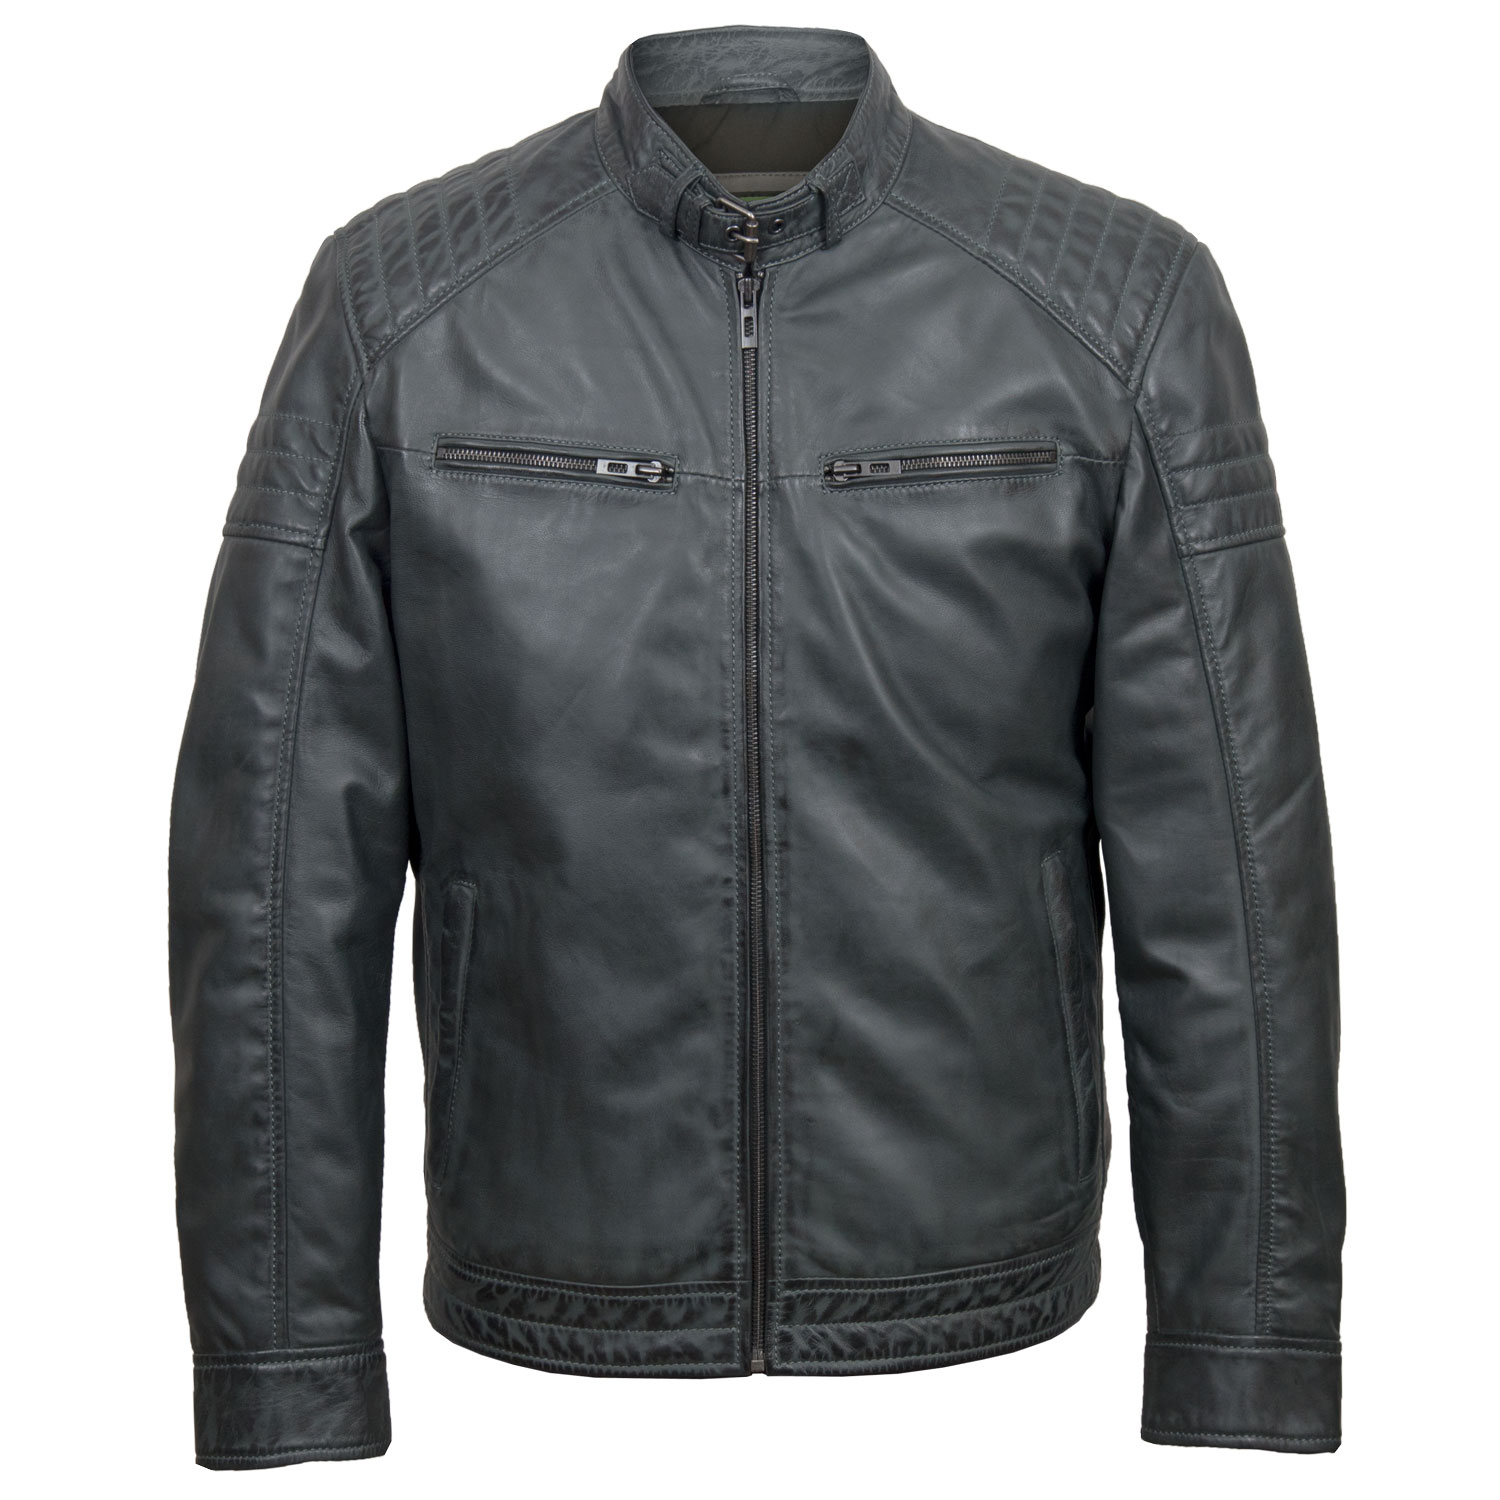 Mens grey leather jacket Budd